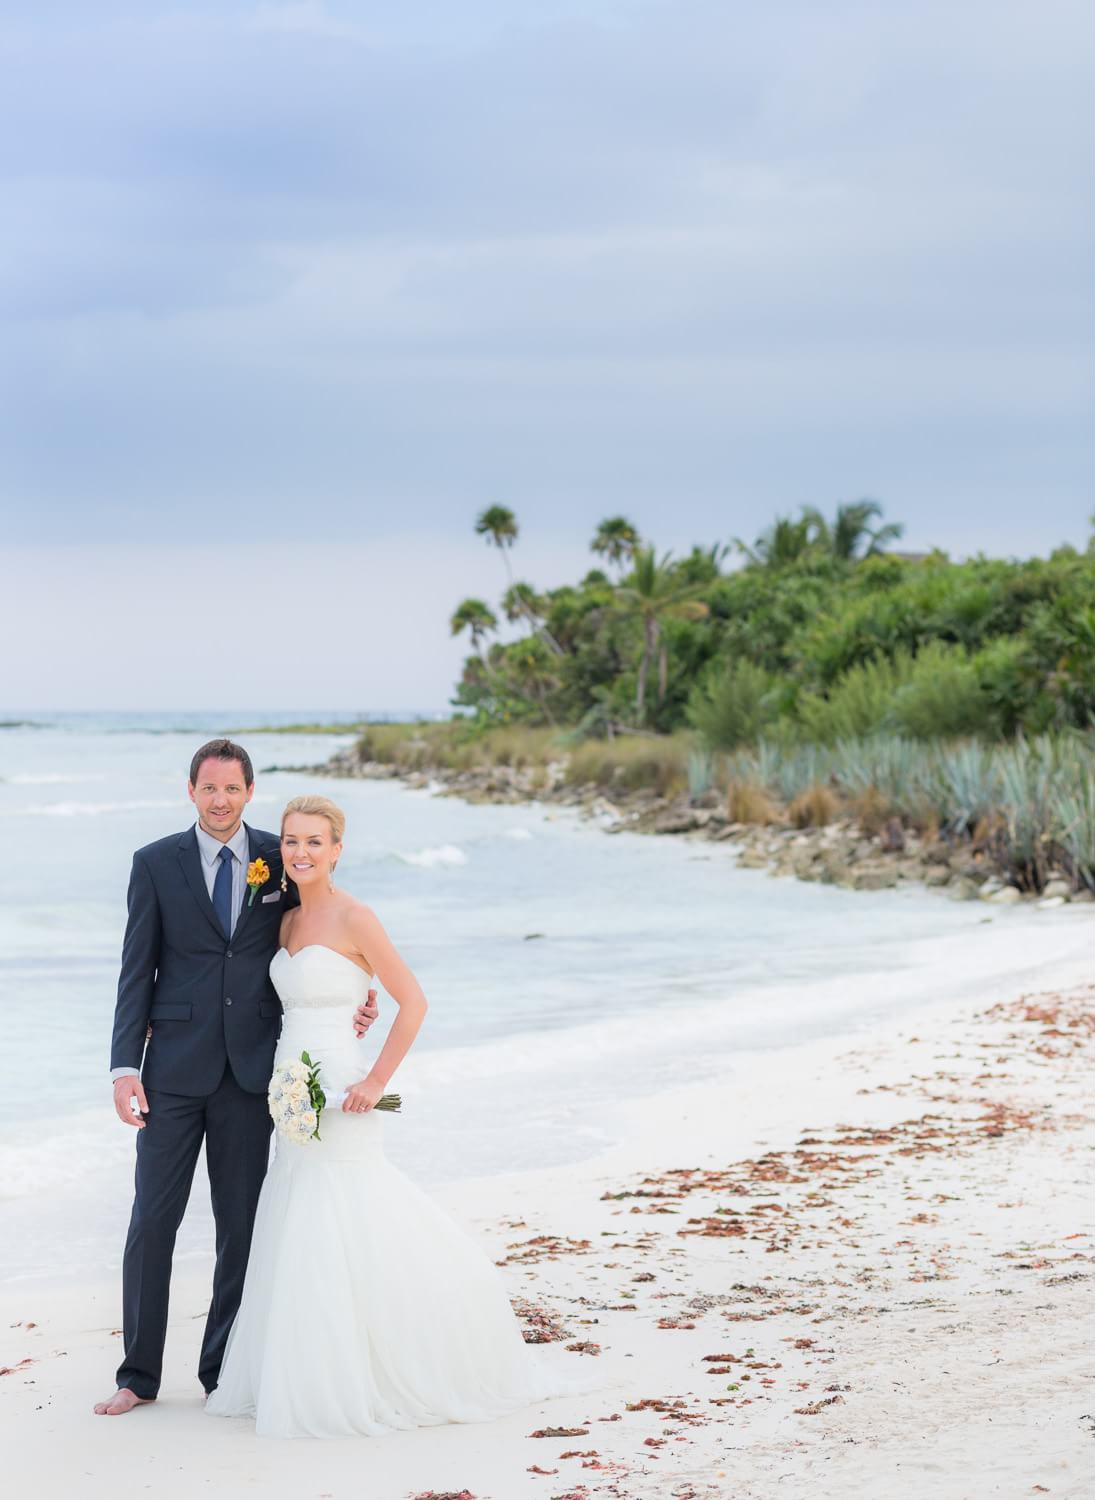 Portrait of couple on beach by Dean Sanderson, Mexico wedding photographer.